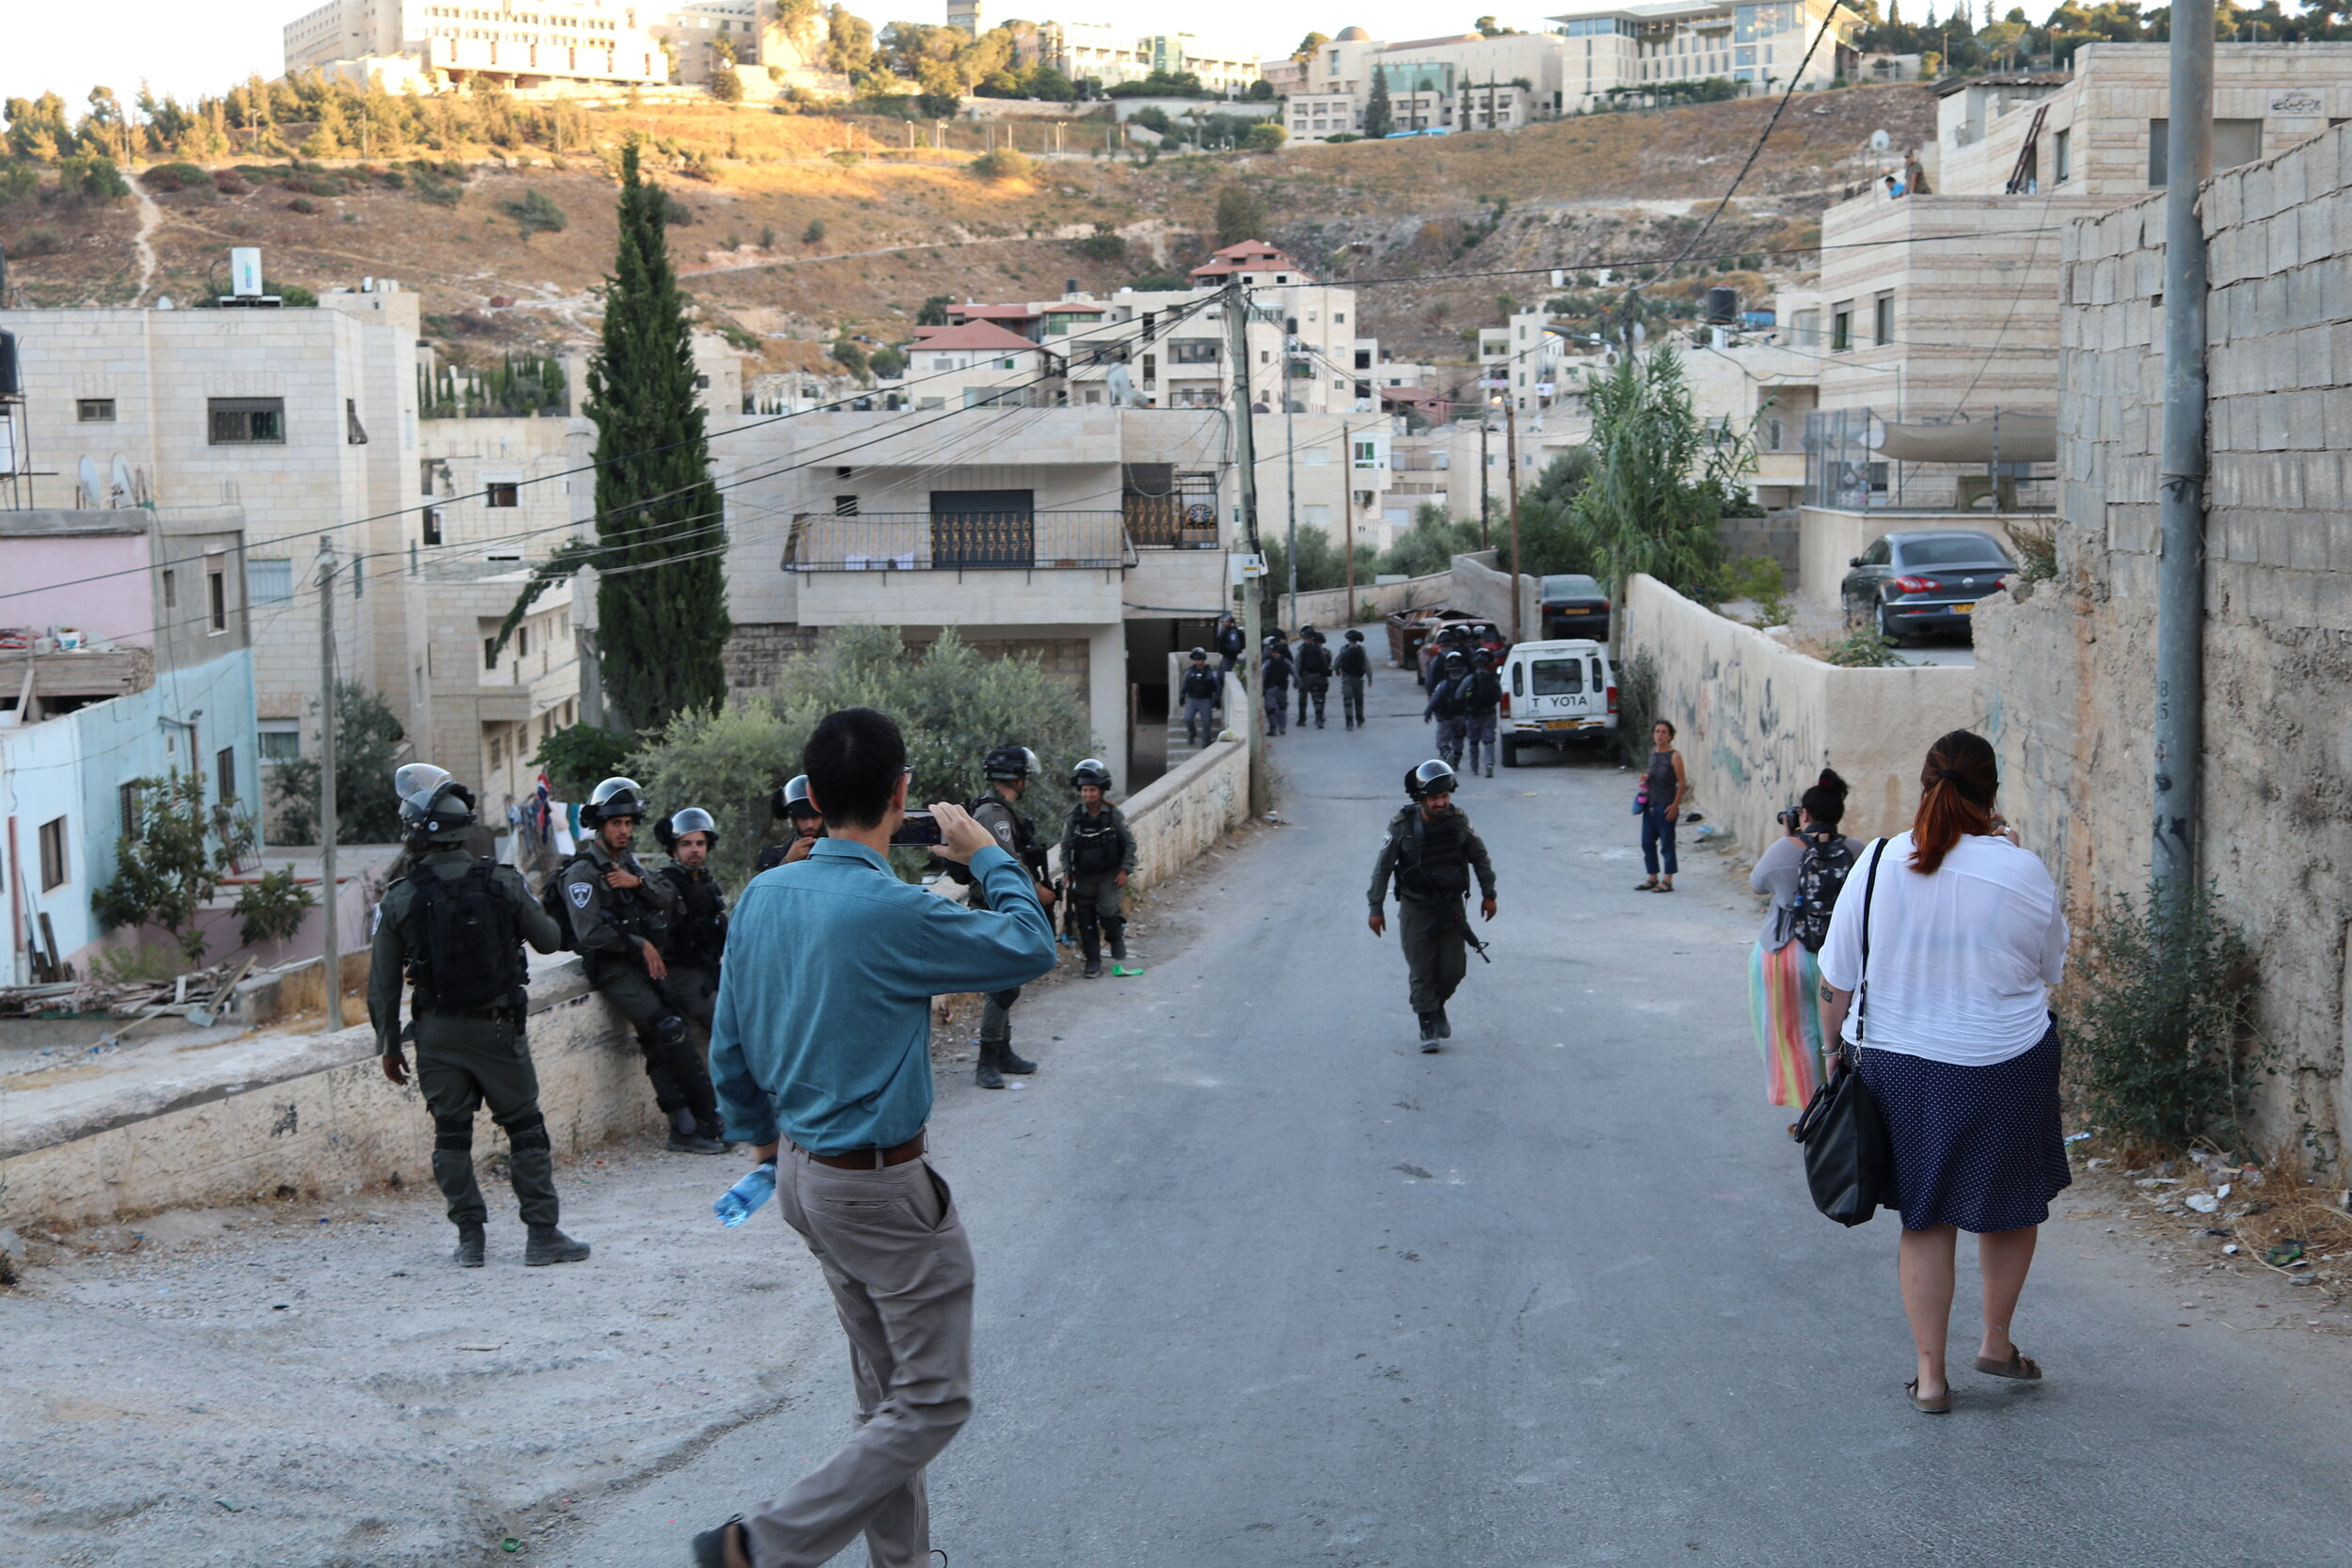 israeli and American activists following and documenting the police. Photo by Bridget Powers.